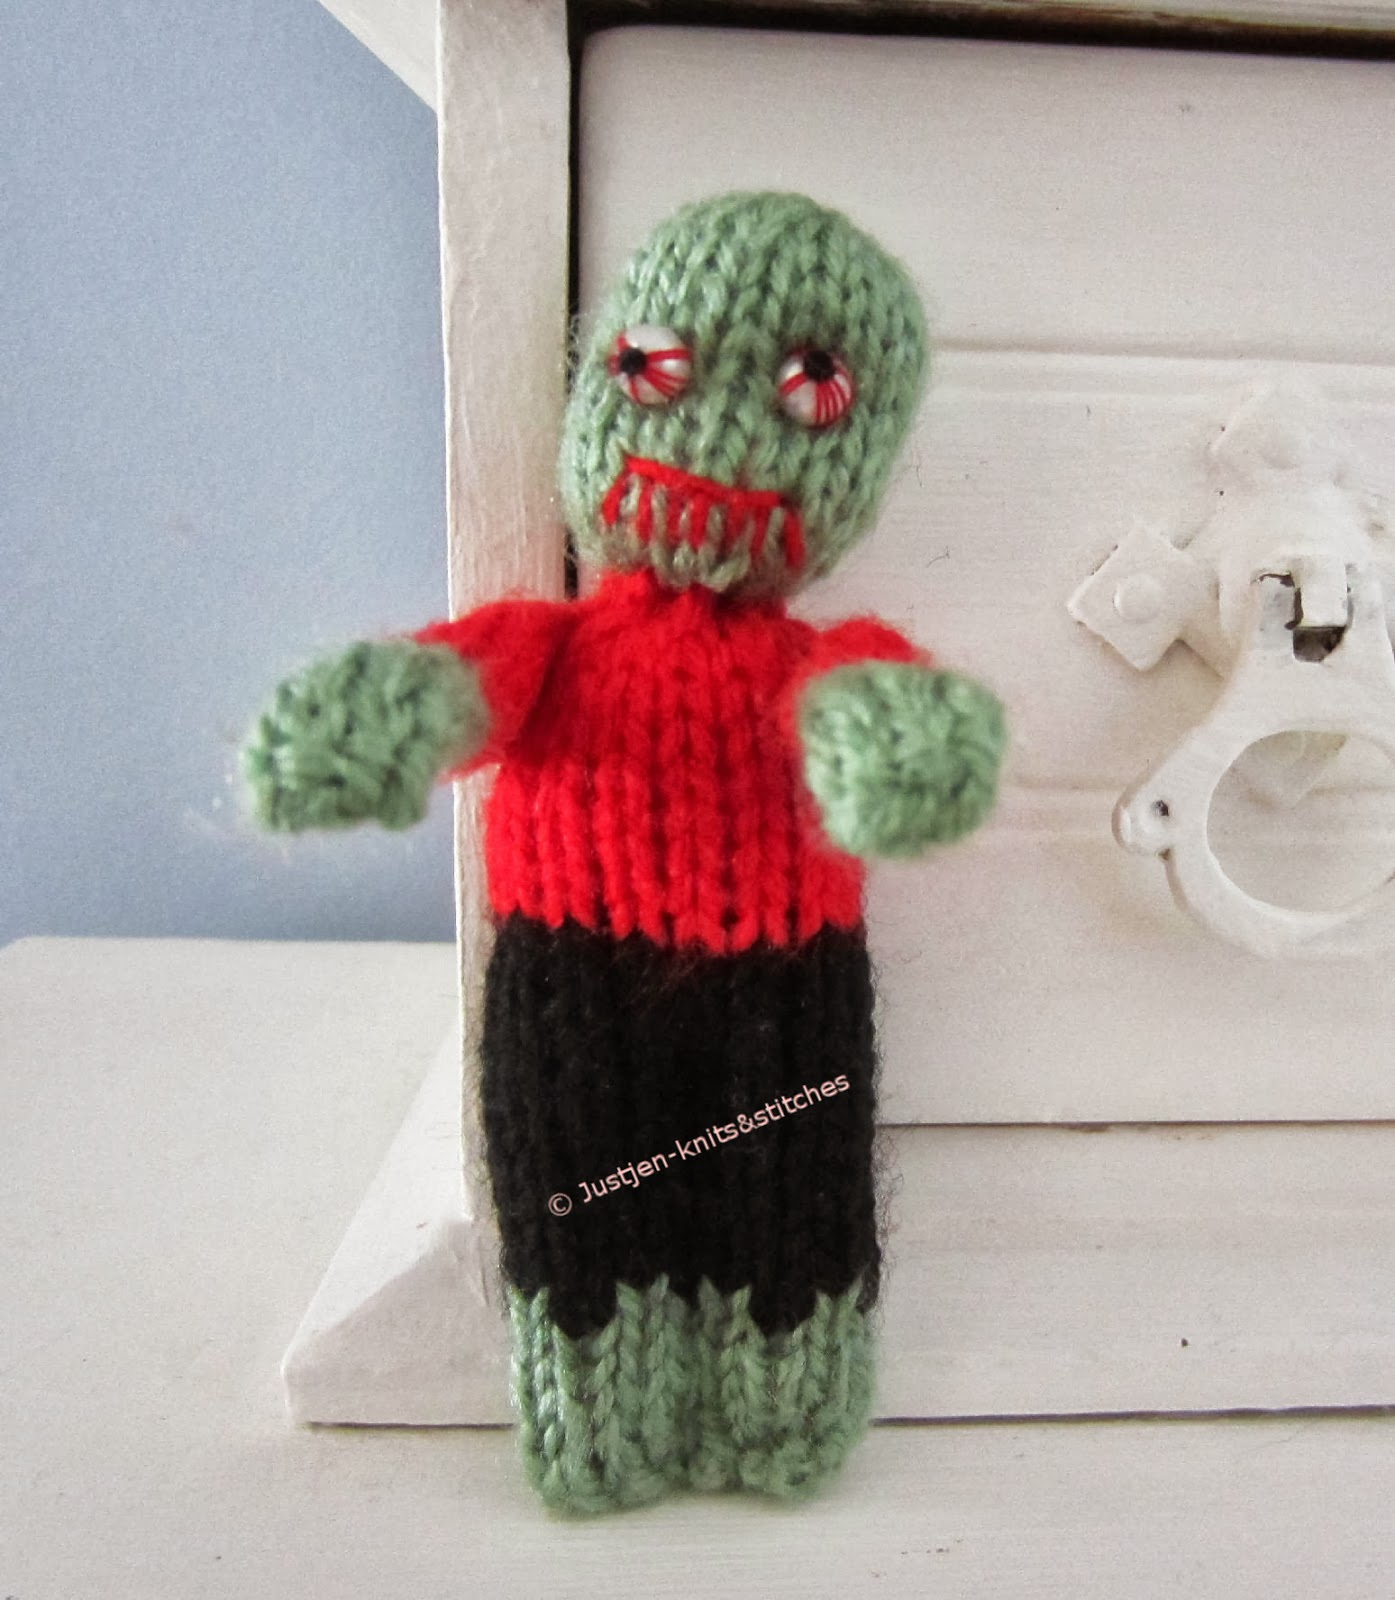 Zombie Knitting Pattern : Justjen knits stitches the little zombie